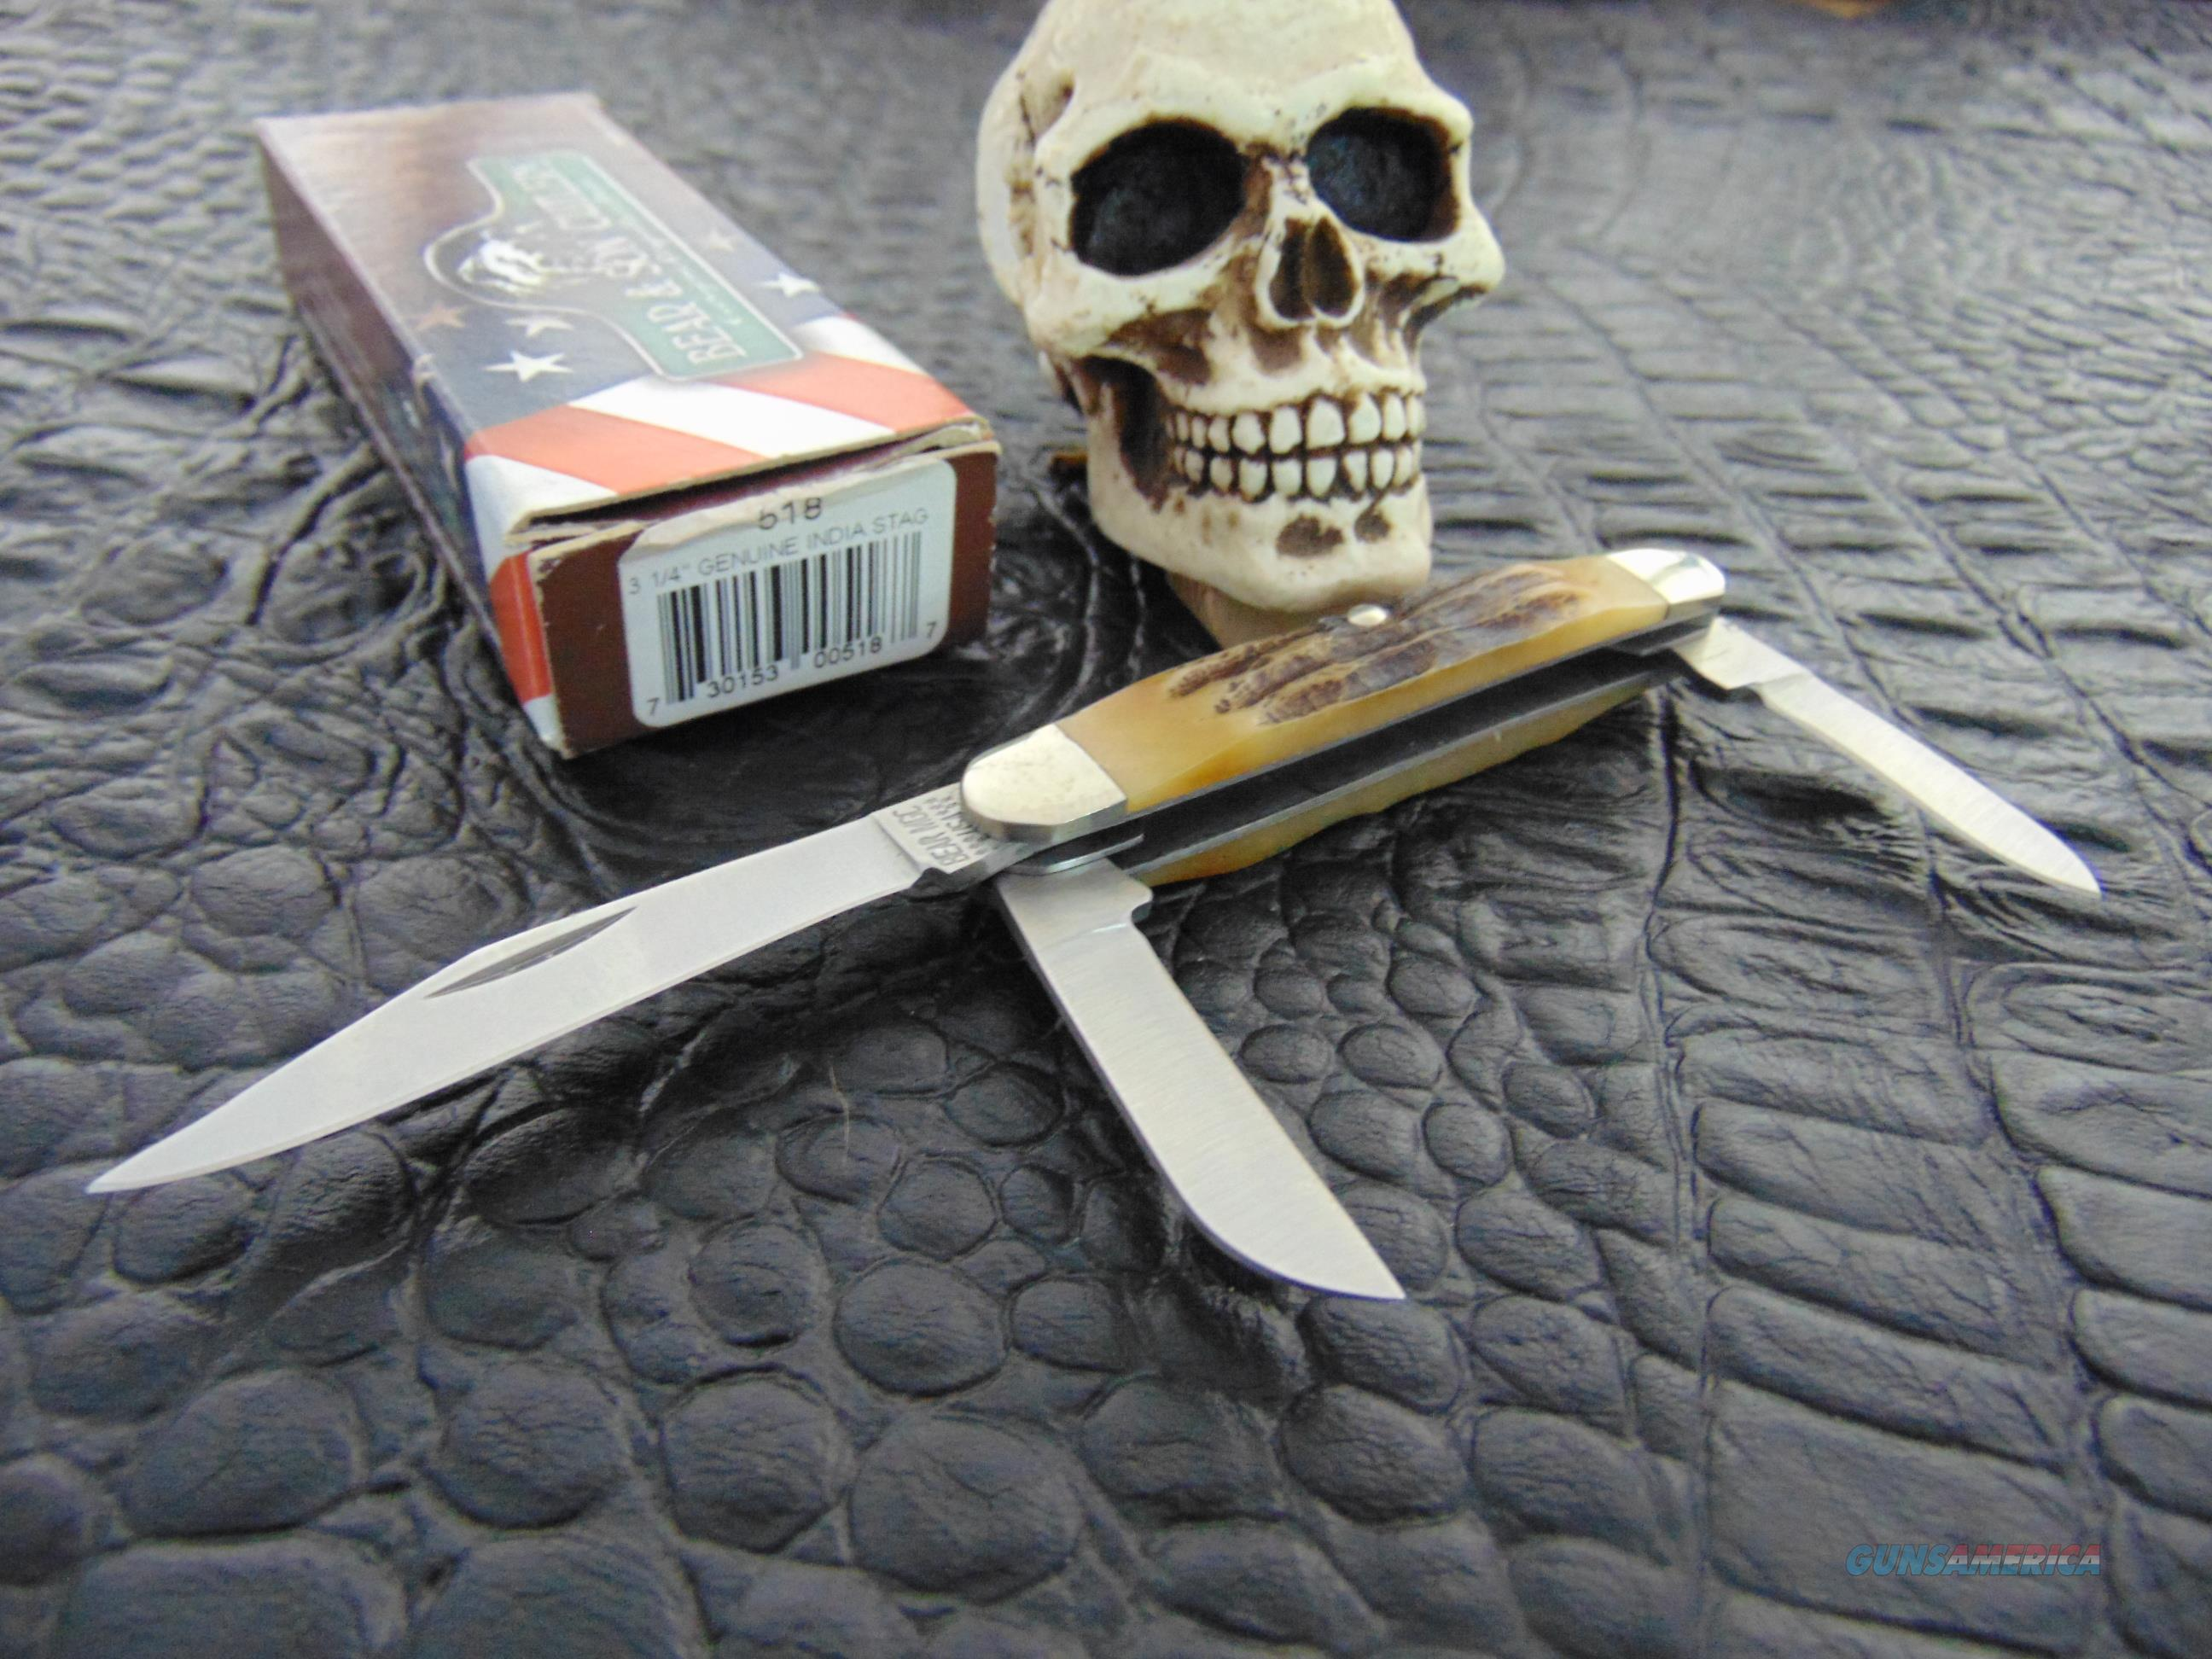 Bear & Sons Cutlery Model 518 STAG Stockman  Non-Guns > Knives/Swords > Knives > Folding Blade > Hand Made